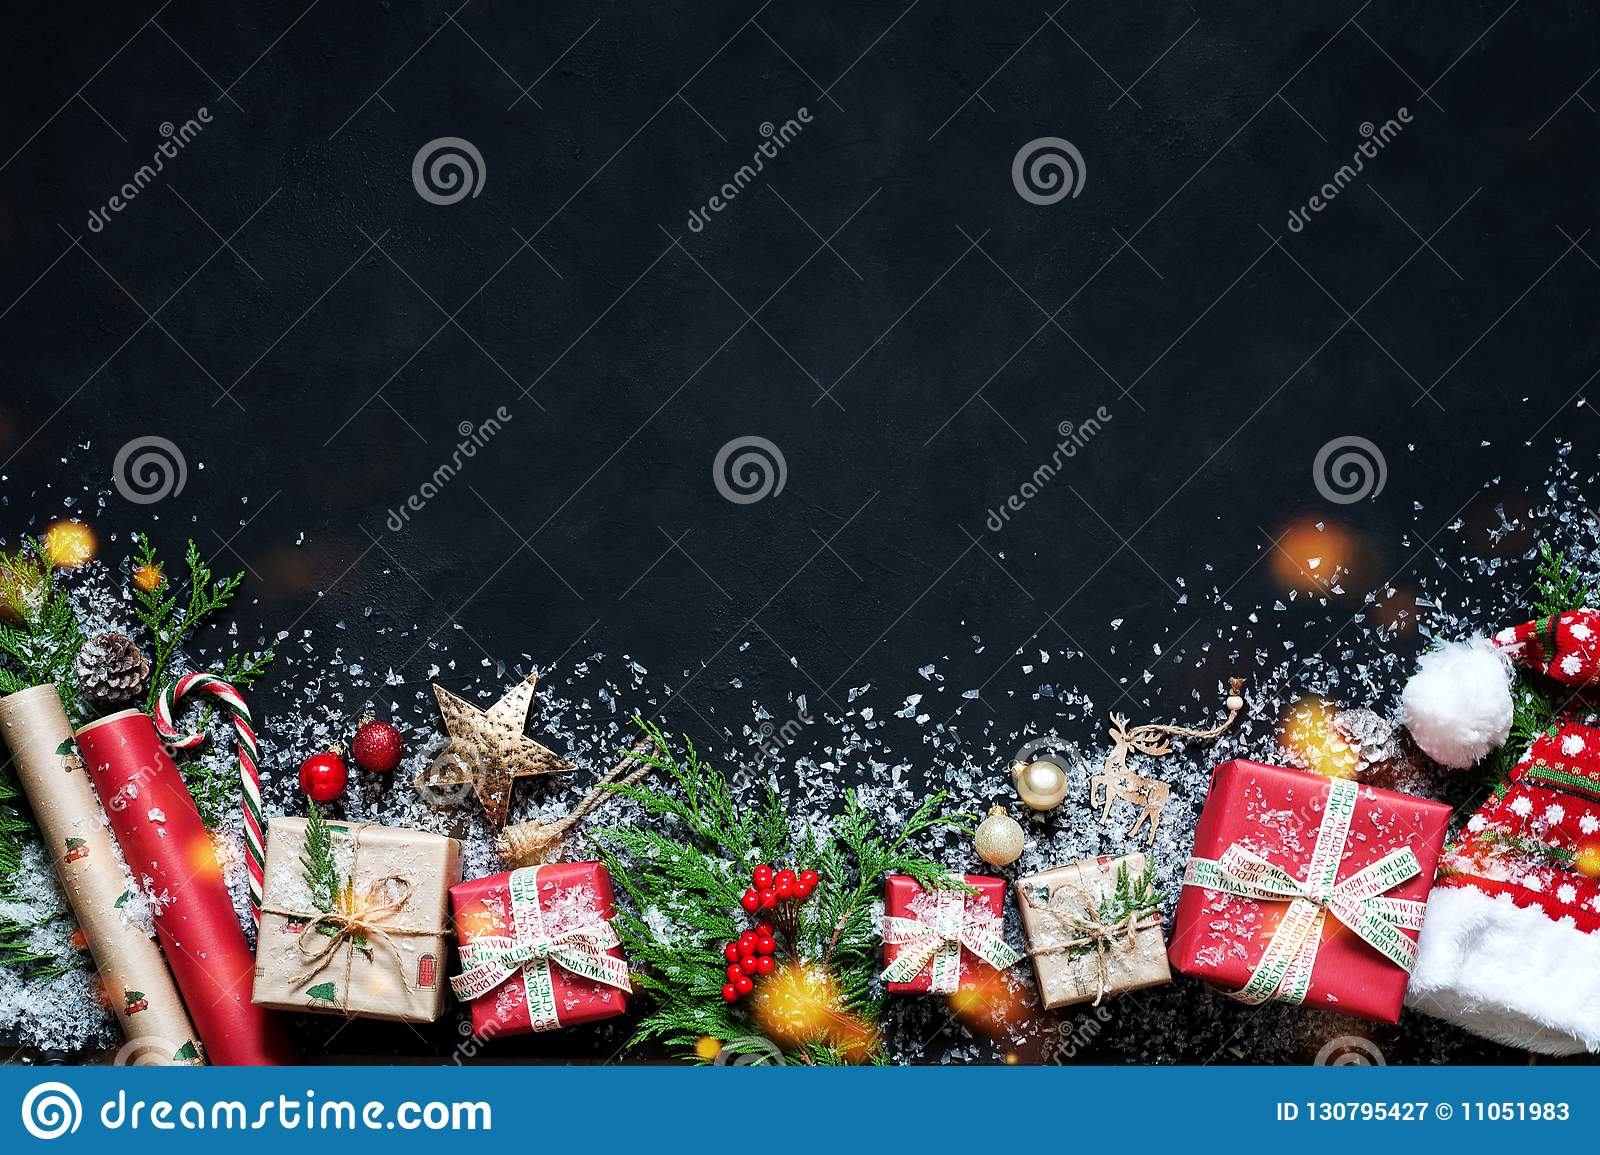 Christmas composition on a black background Christmas decorations, boxes, branches of tree, cap, Santa, star.